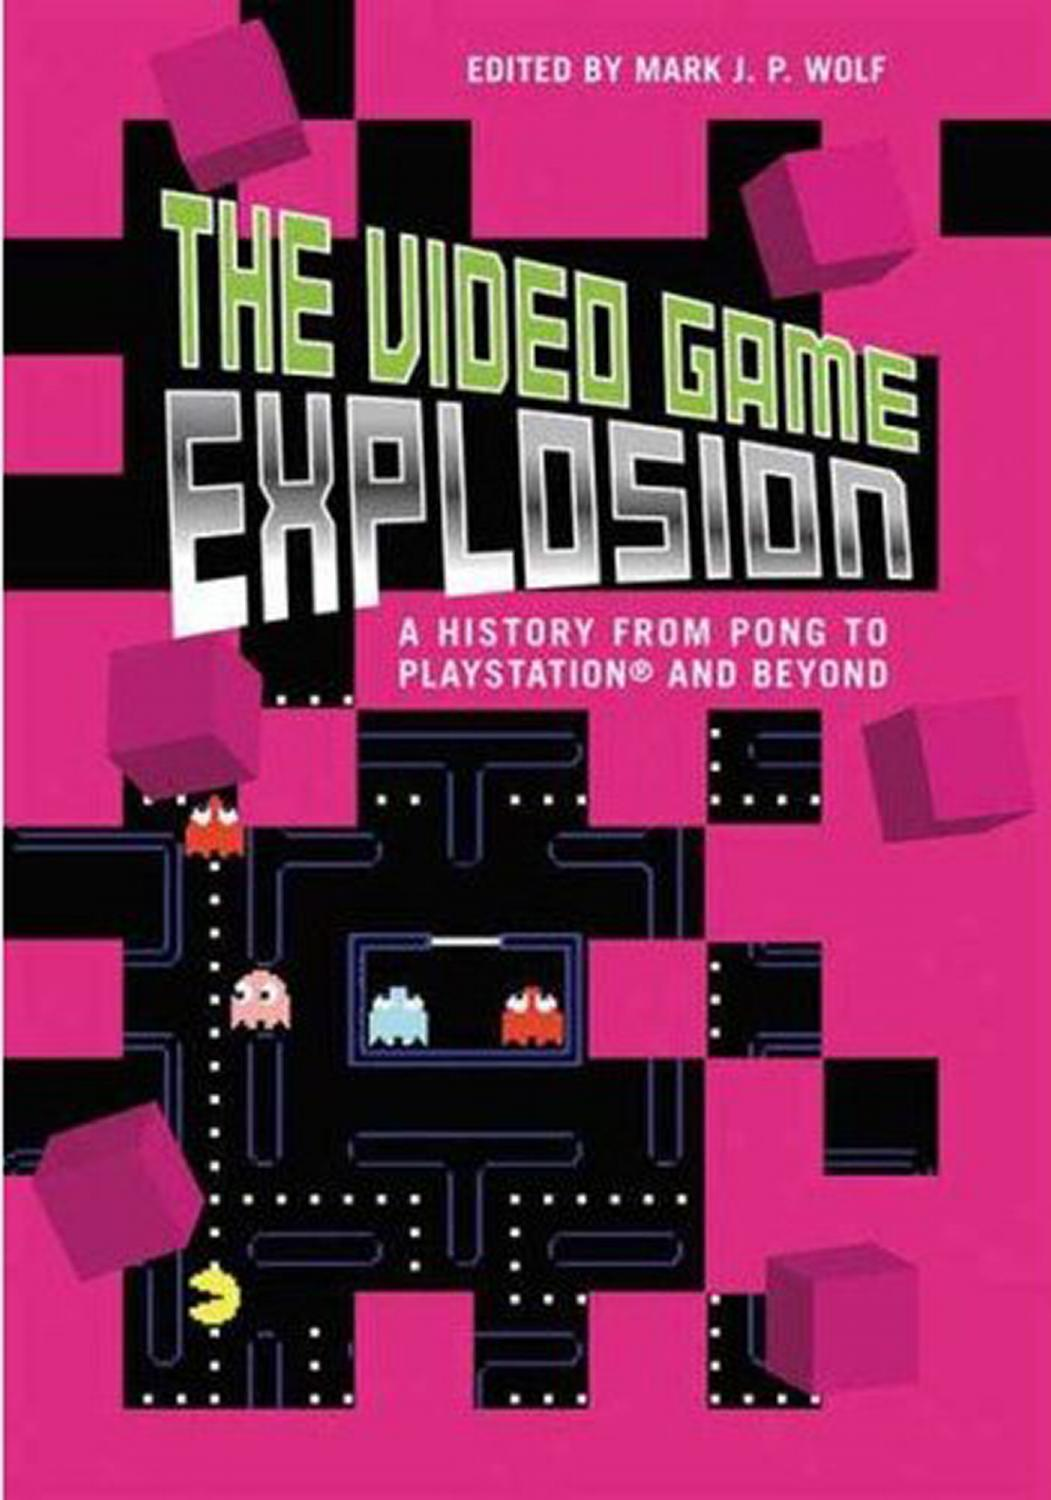 The video game explosion a history from p mark j p wolf by